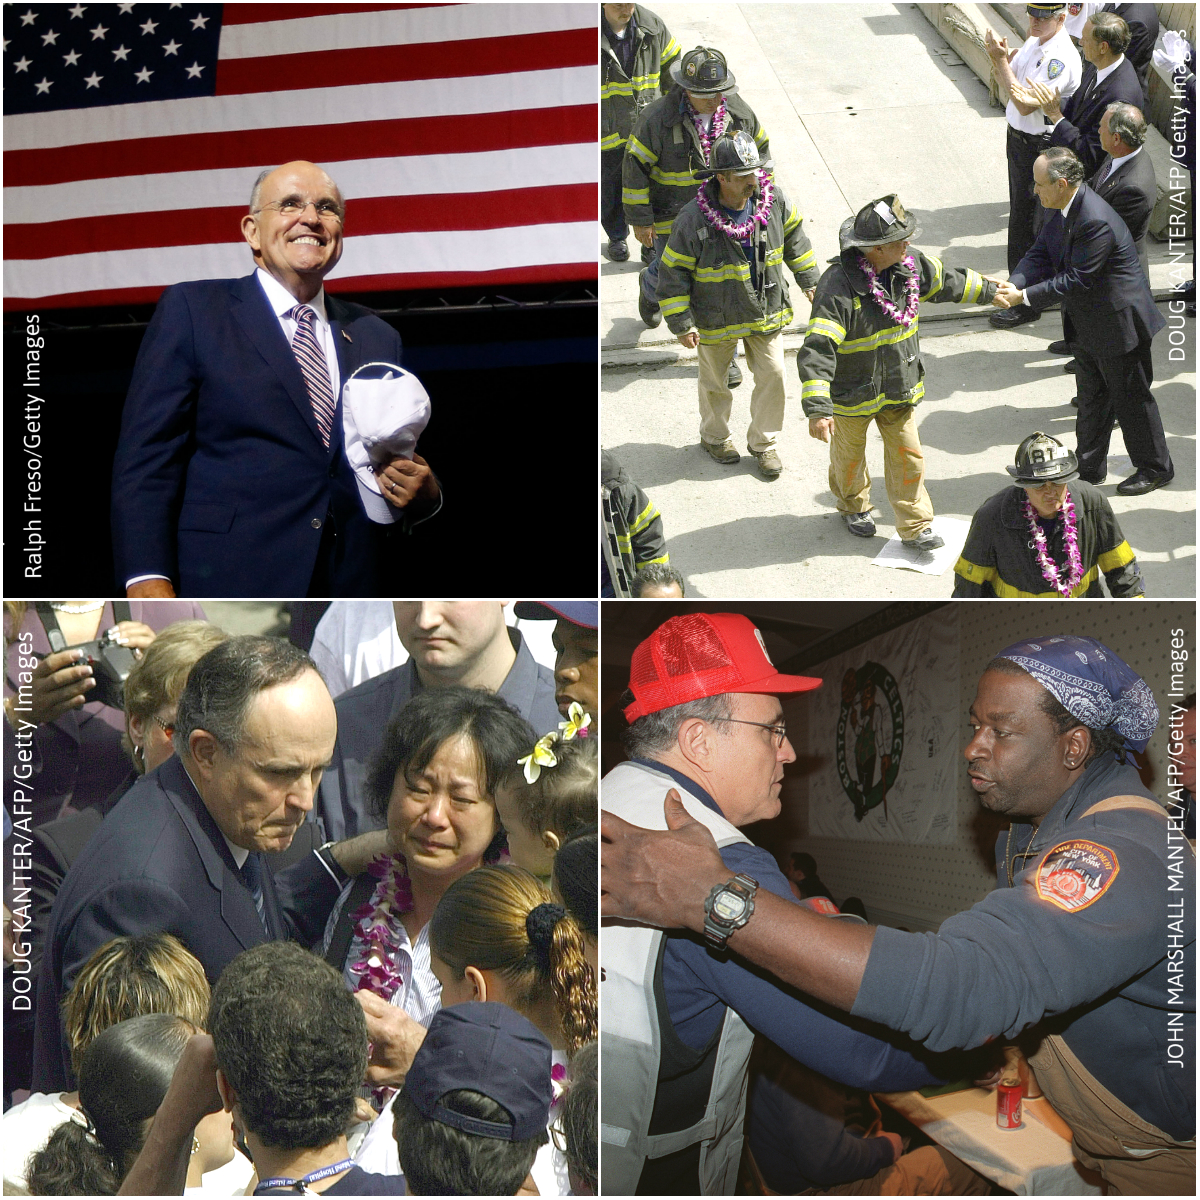 Rudy Giuliani arrives at a campaign rally for then-Republican presidential candidate Donald Trump on Aug. 31, 2016, in Phoenix, Arizona, and as New York City's Mayor, greeting New Yorkers and emergency service personnel near the site of the World Trade Center disaster in 2001. (Getty Images)